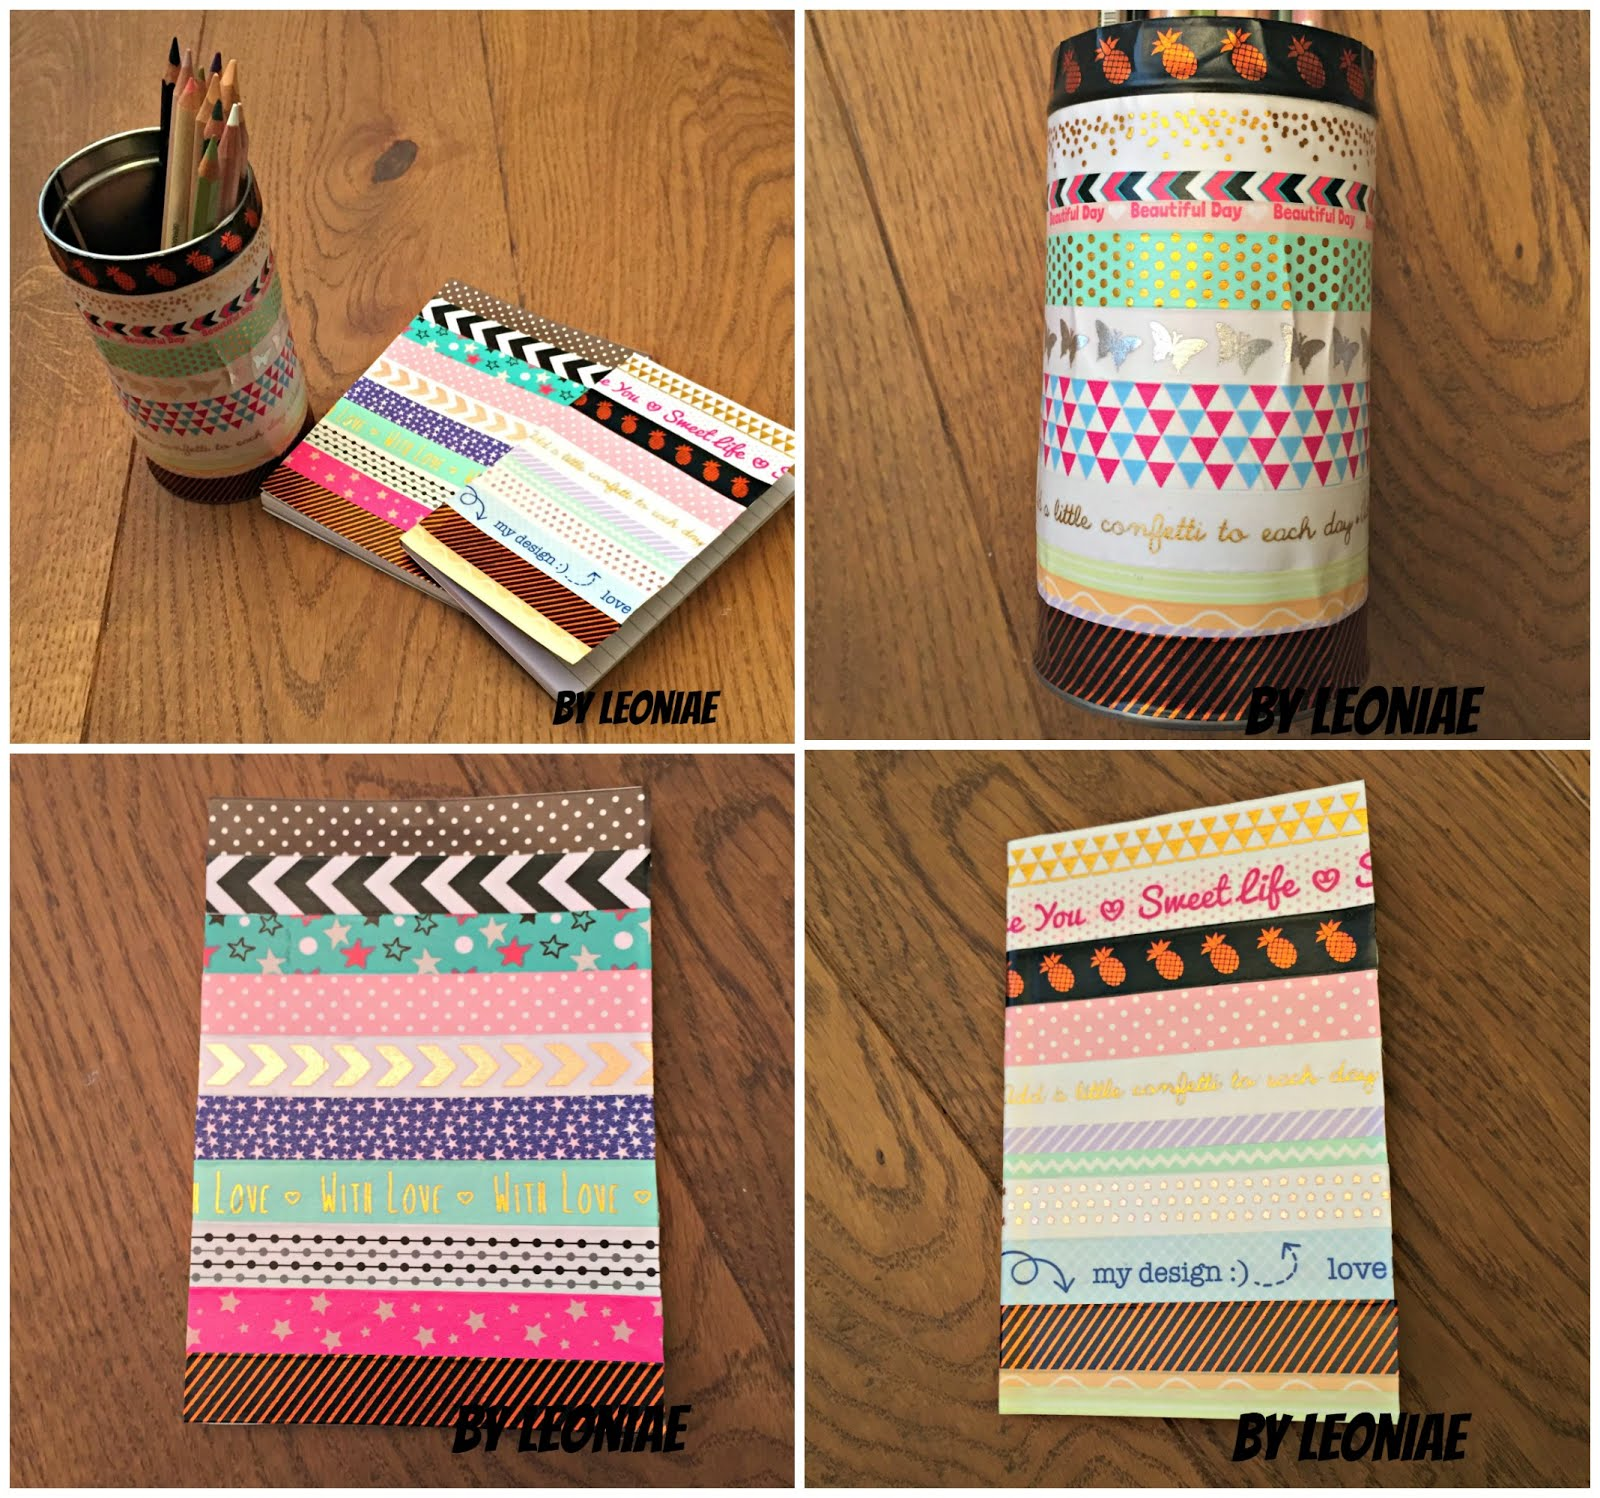 Creative with washi tape